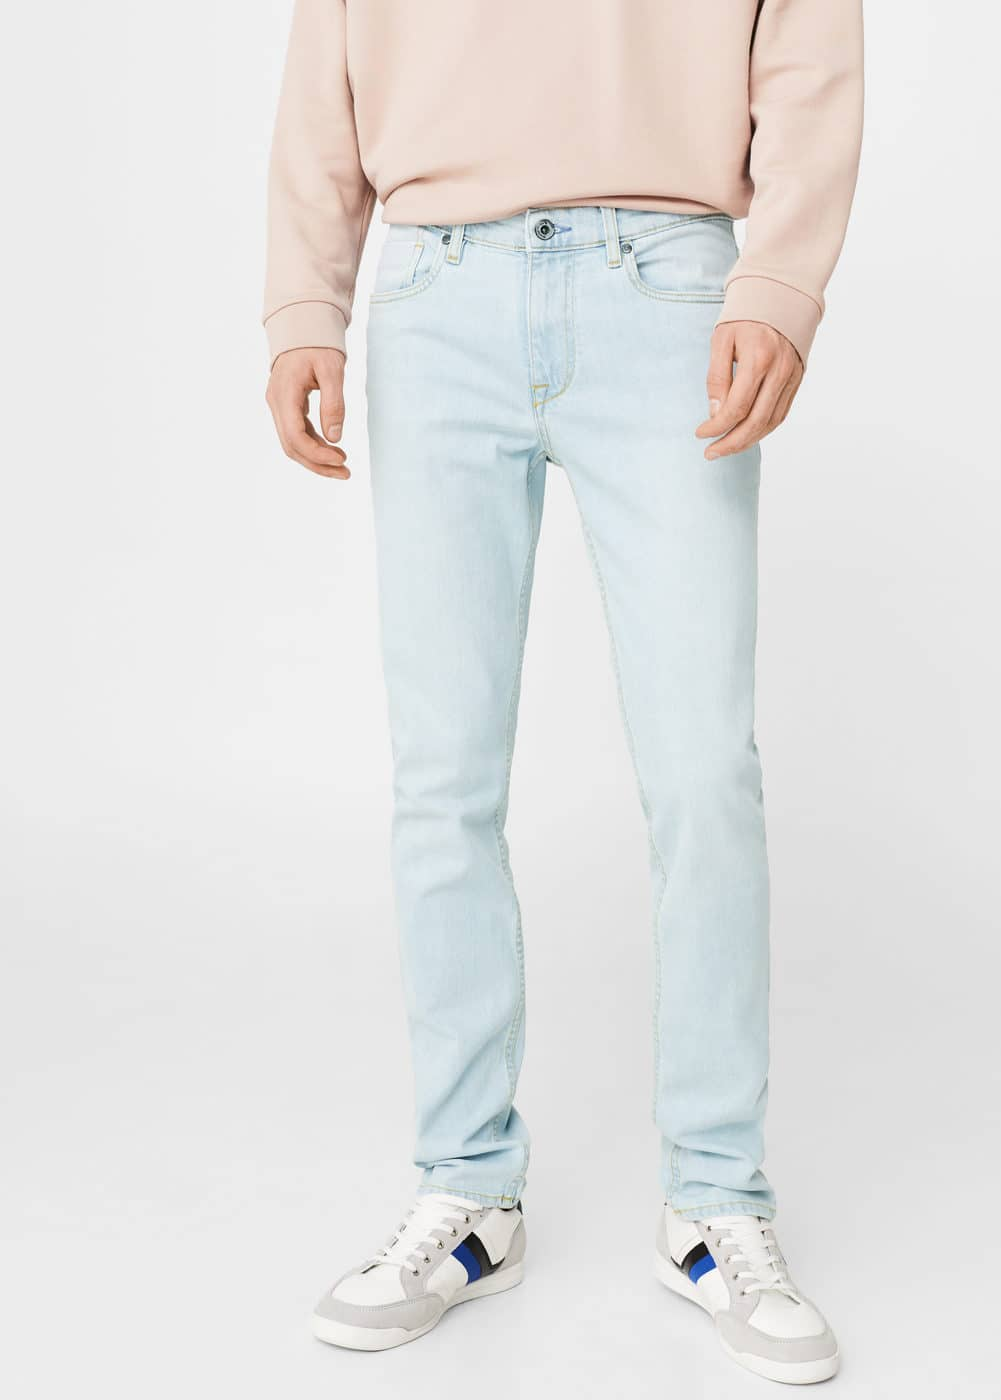 Jeans jan slim-fit lavado claro | MANGO MAN